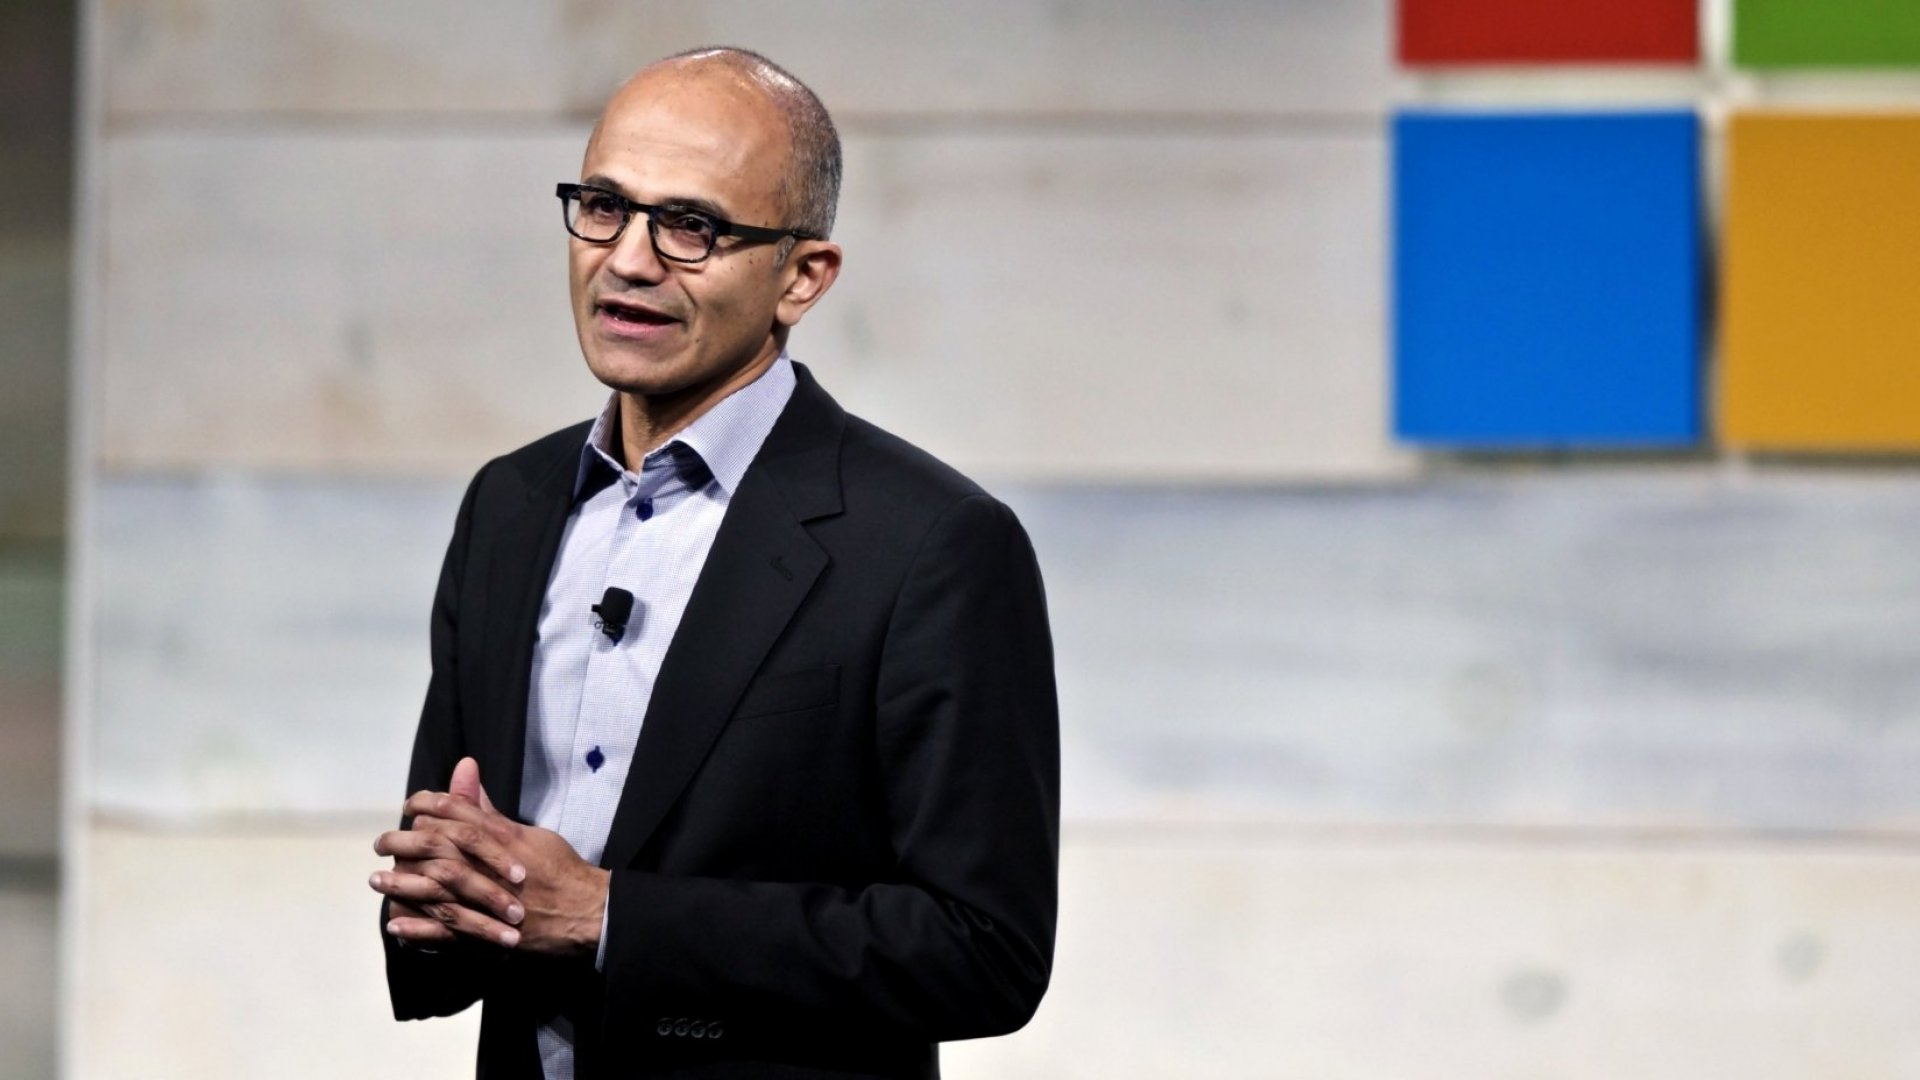 It's Official: How Microsoft and LinkedIn Plan to Change the Way the World Works